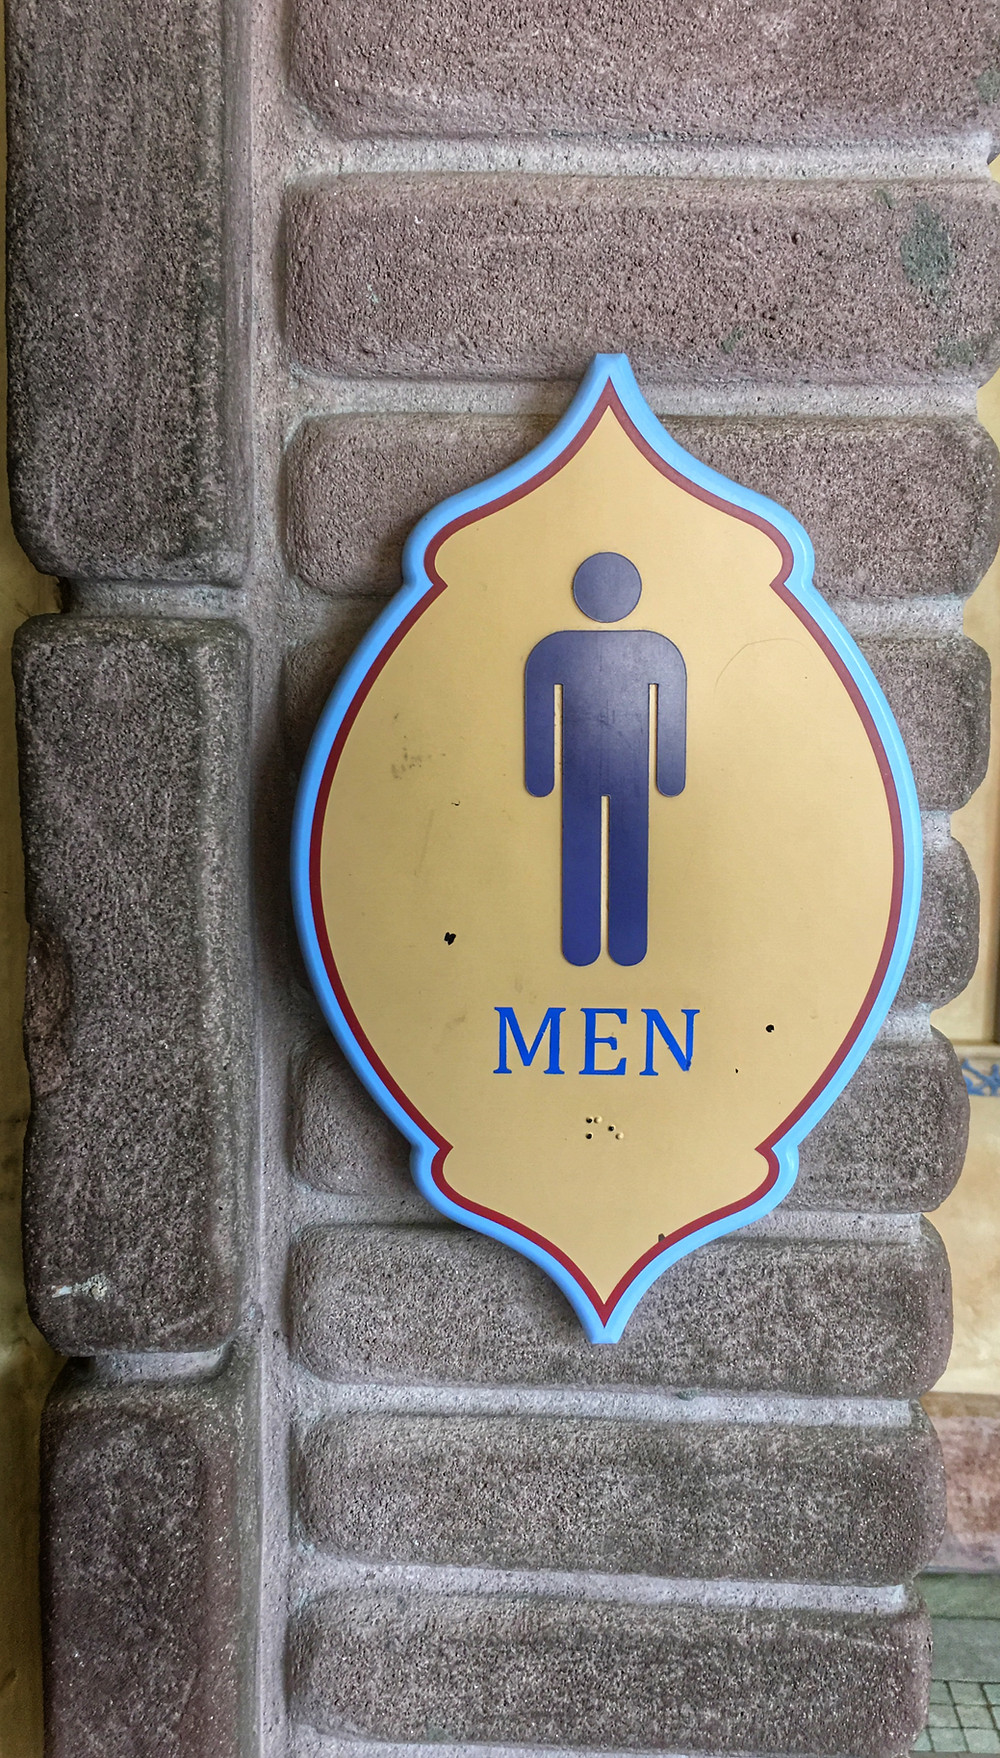 Men's Room Sign, Frontierland/Adventureland Breezeway Magic Kingdom